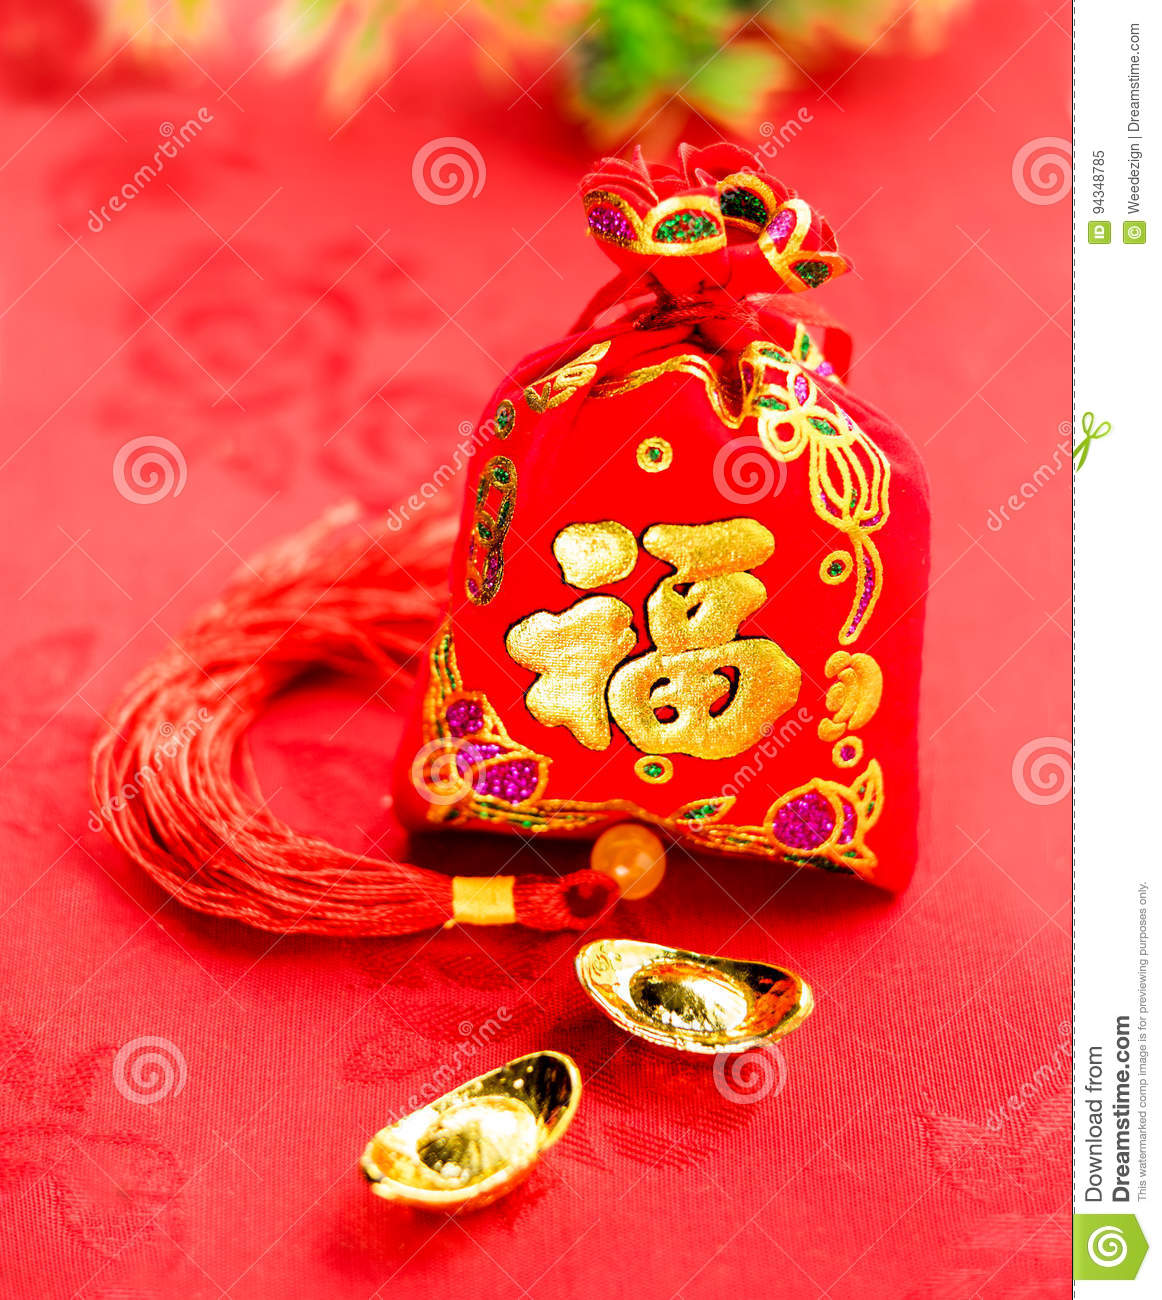 Chinese New Year Decoration: Red Felt Fabric Bag Or Ang ...